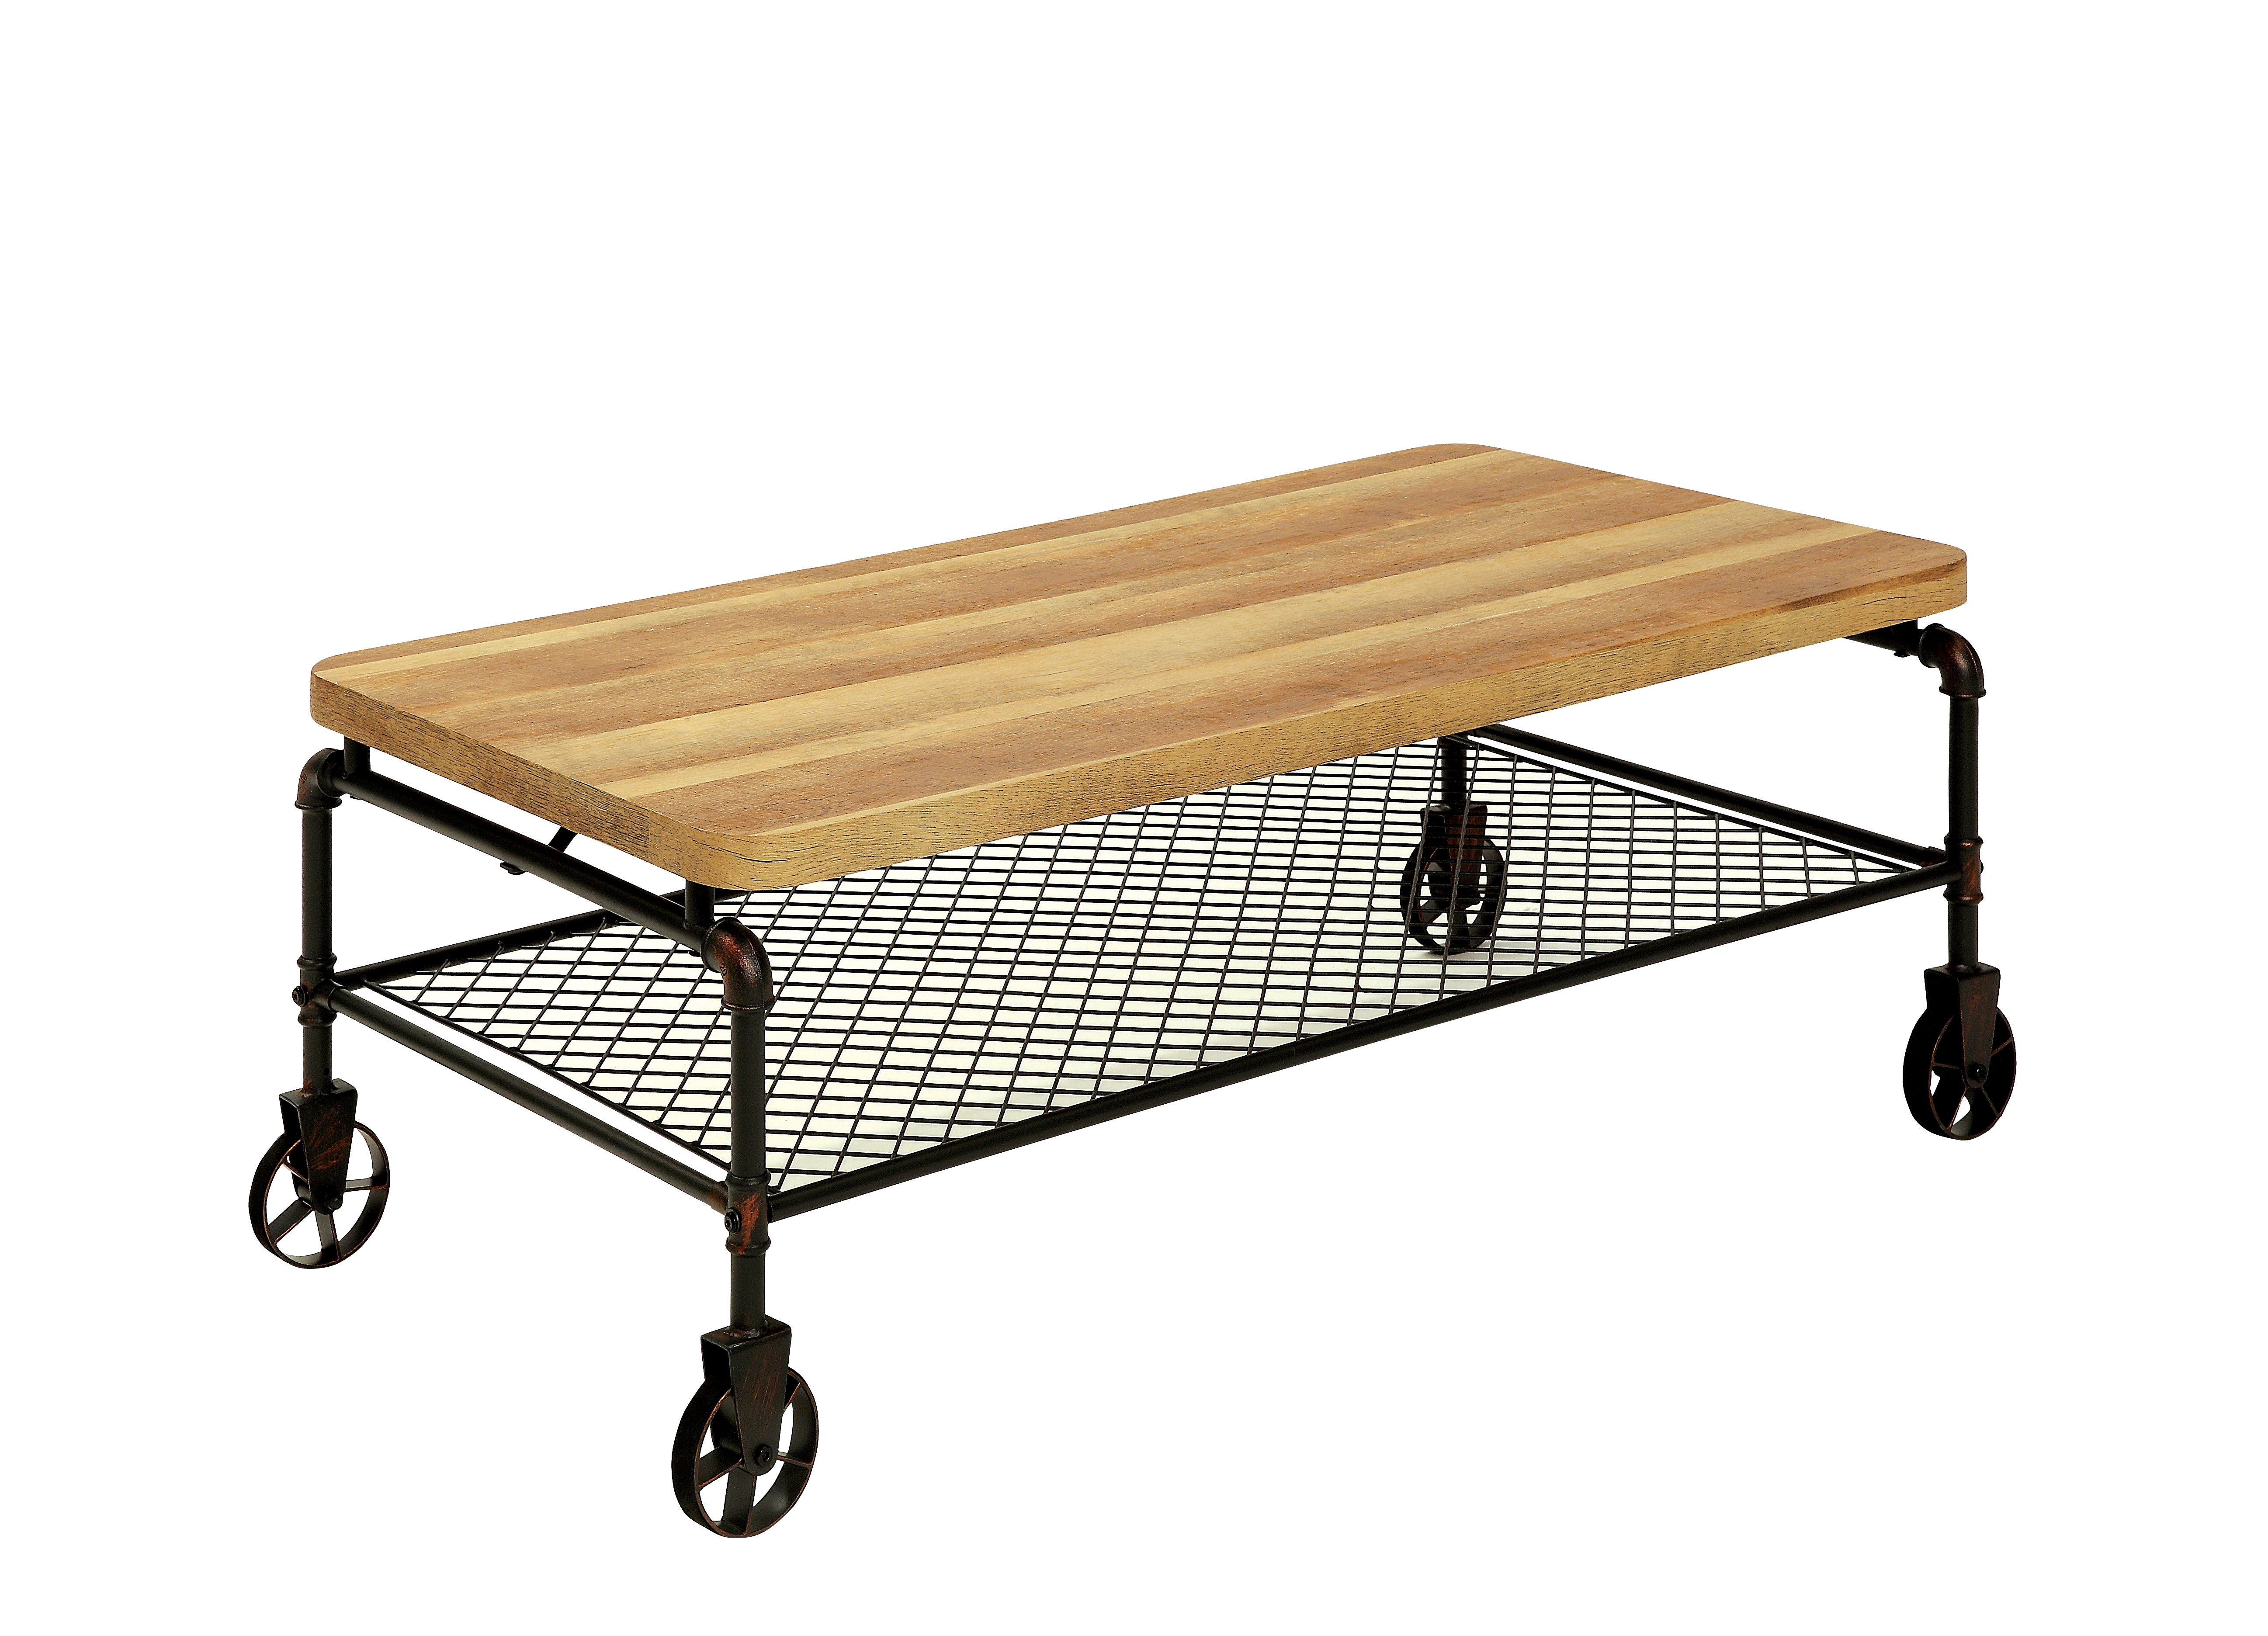 Furniture Of America Tiegan Industrial Style Coffee Table